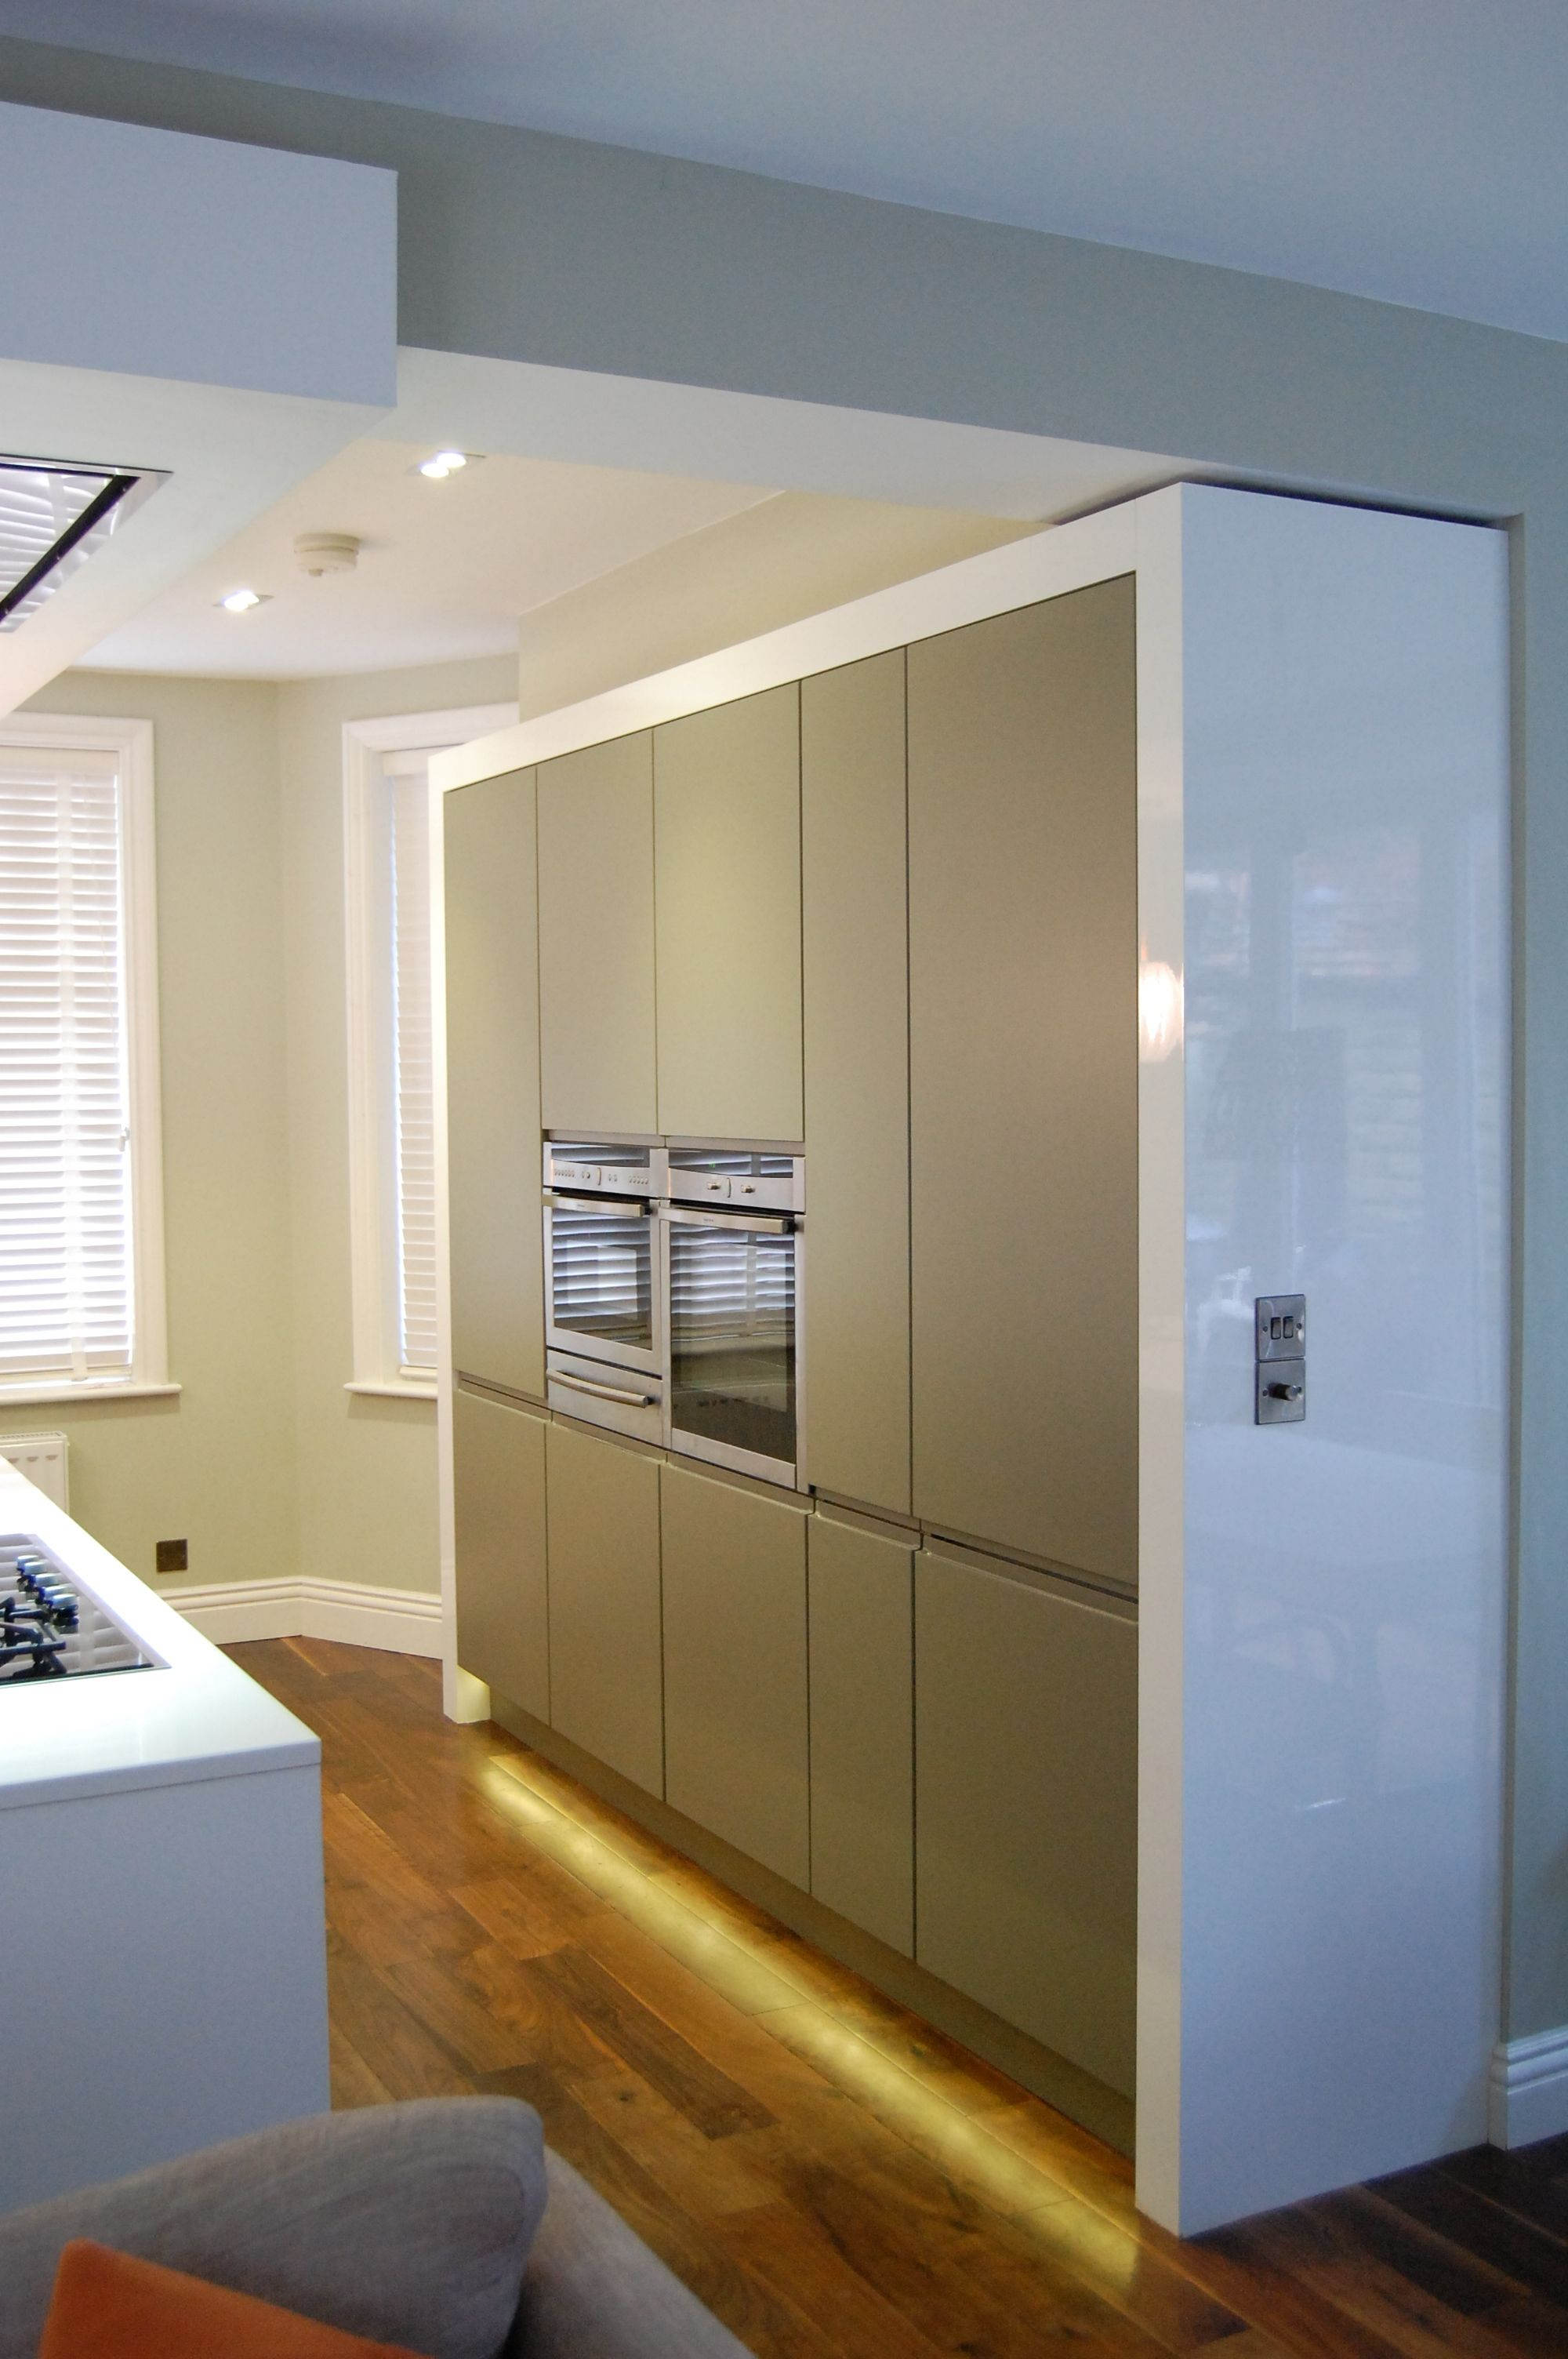 Weetwood Leeds. We love this Sharp, contemporary style